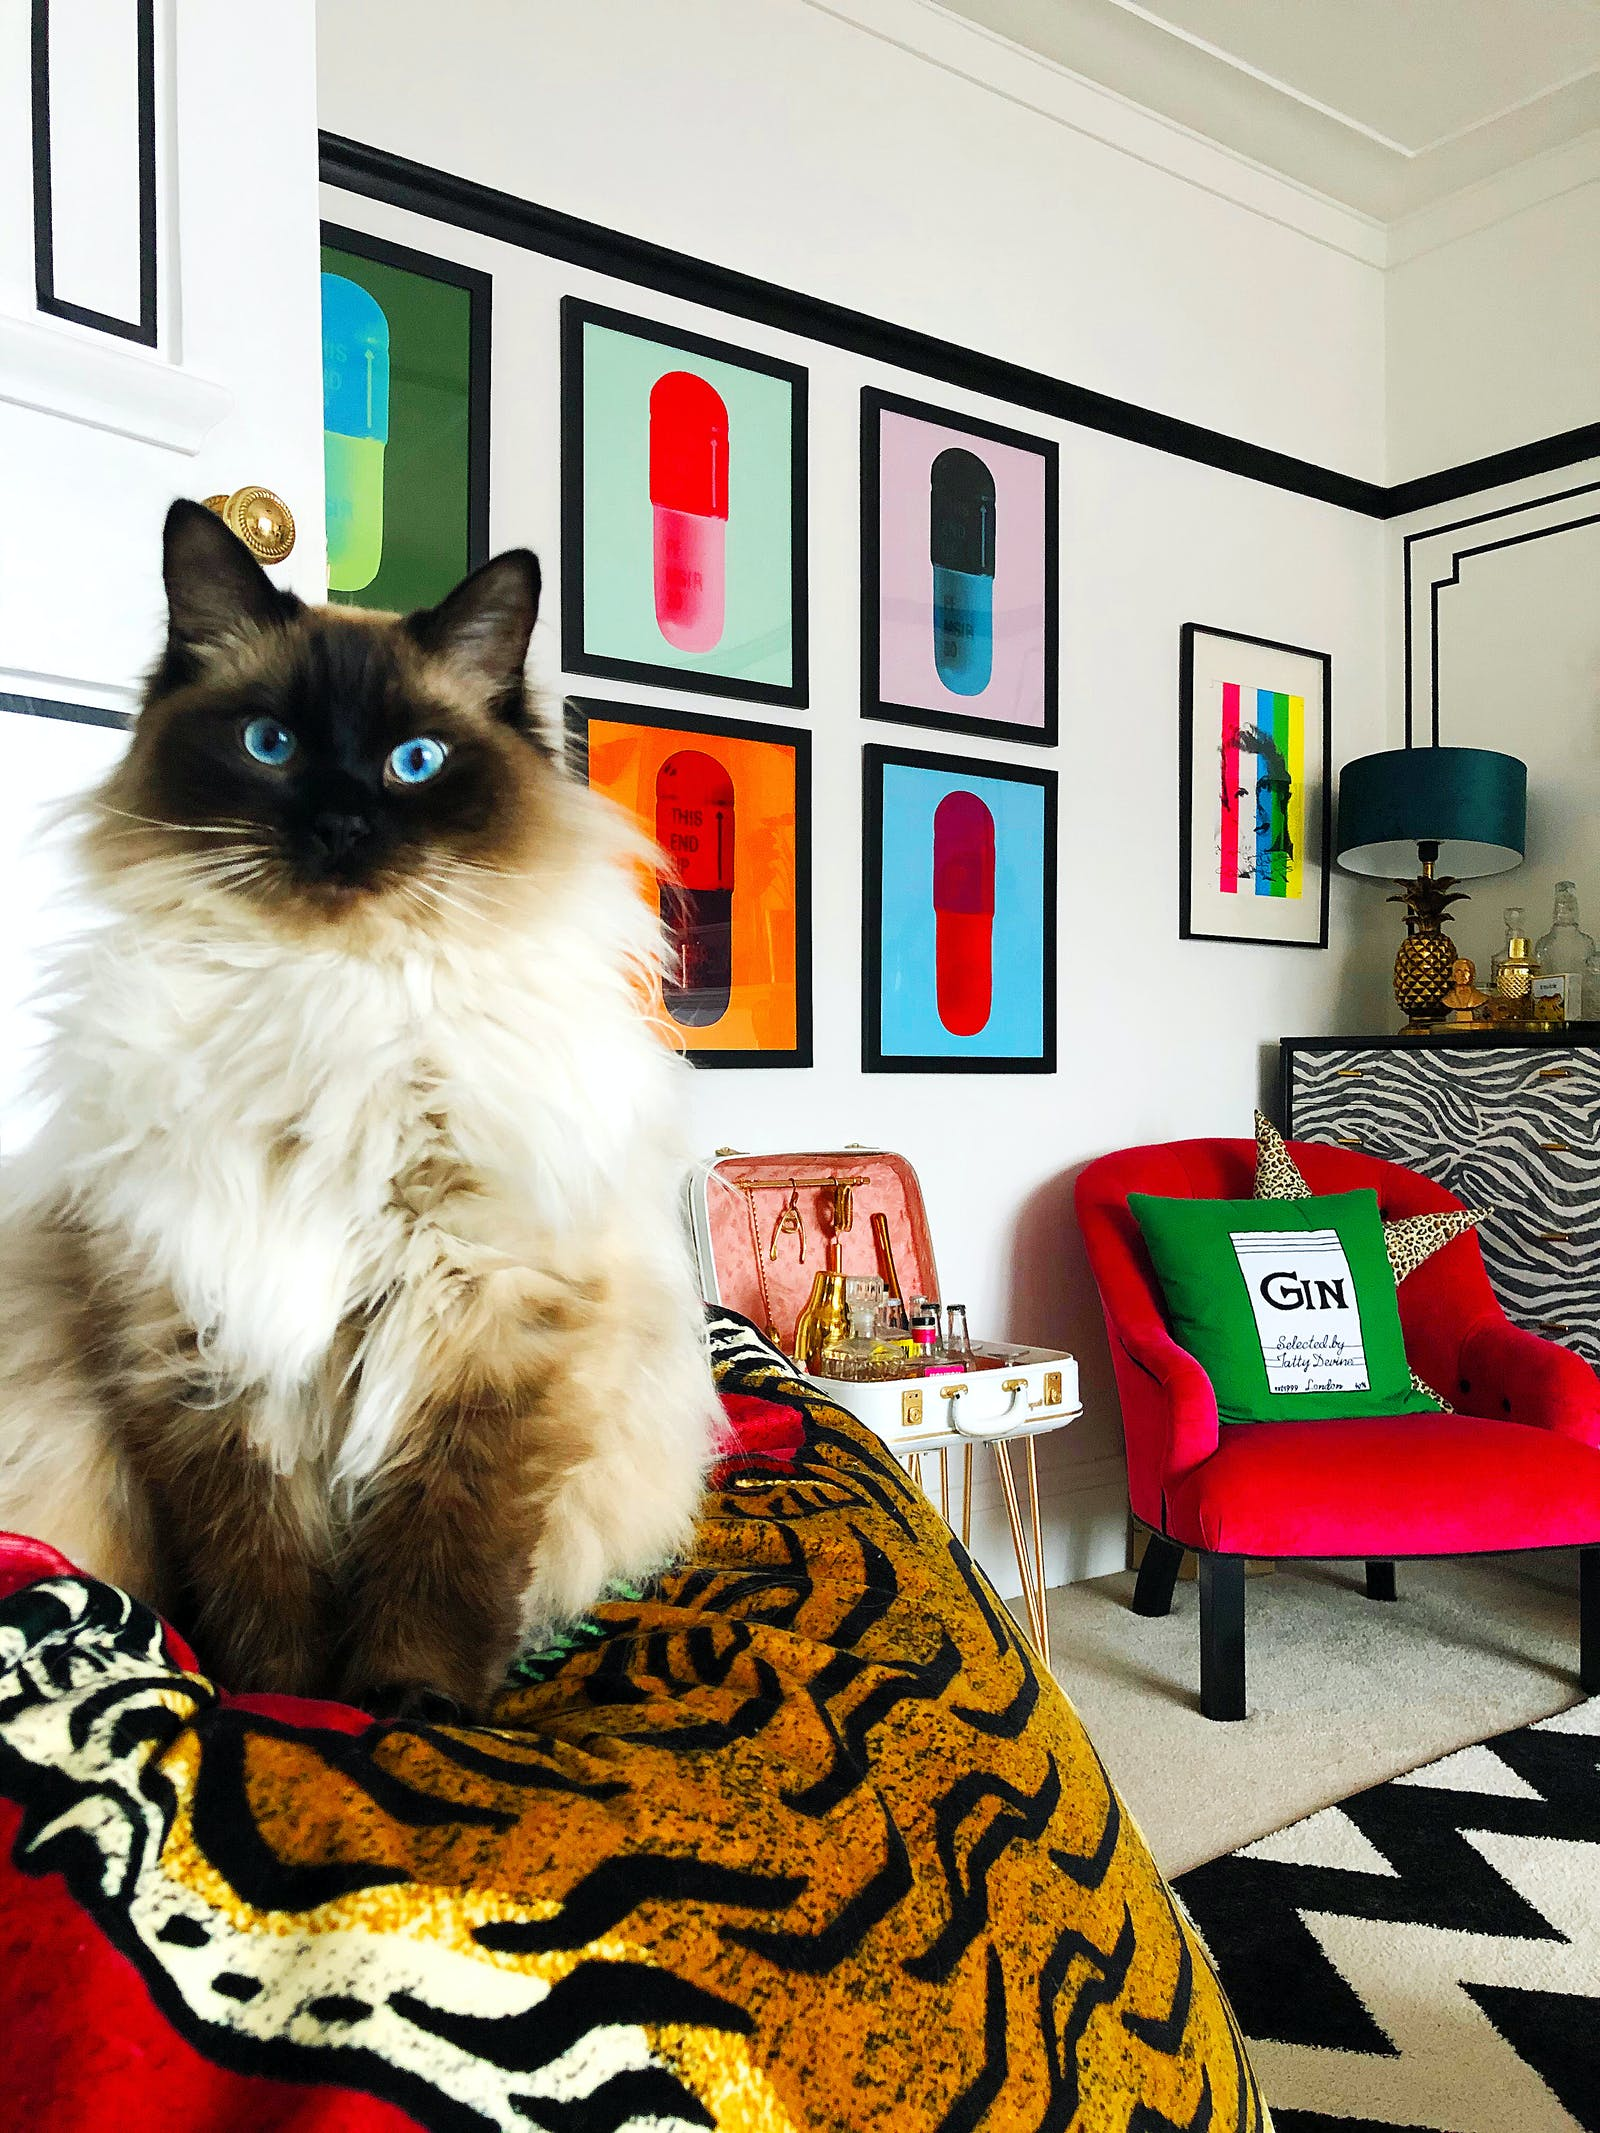 RHOI Pablo the cat sits in foreground, with Damien  Hurst pill prints on wall above a bright red chair and portable retro bar